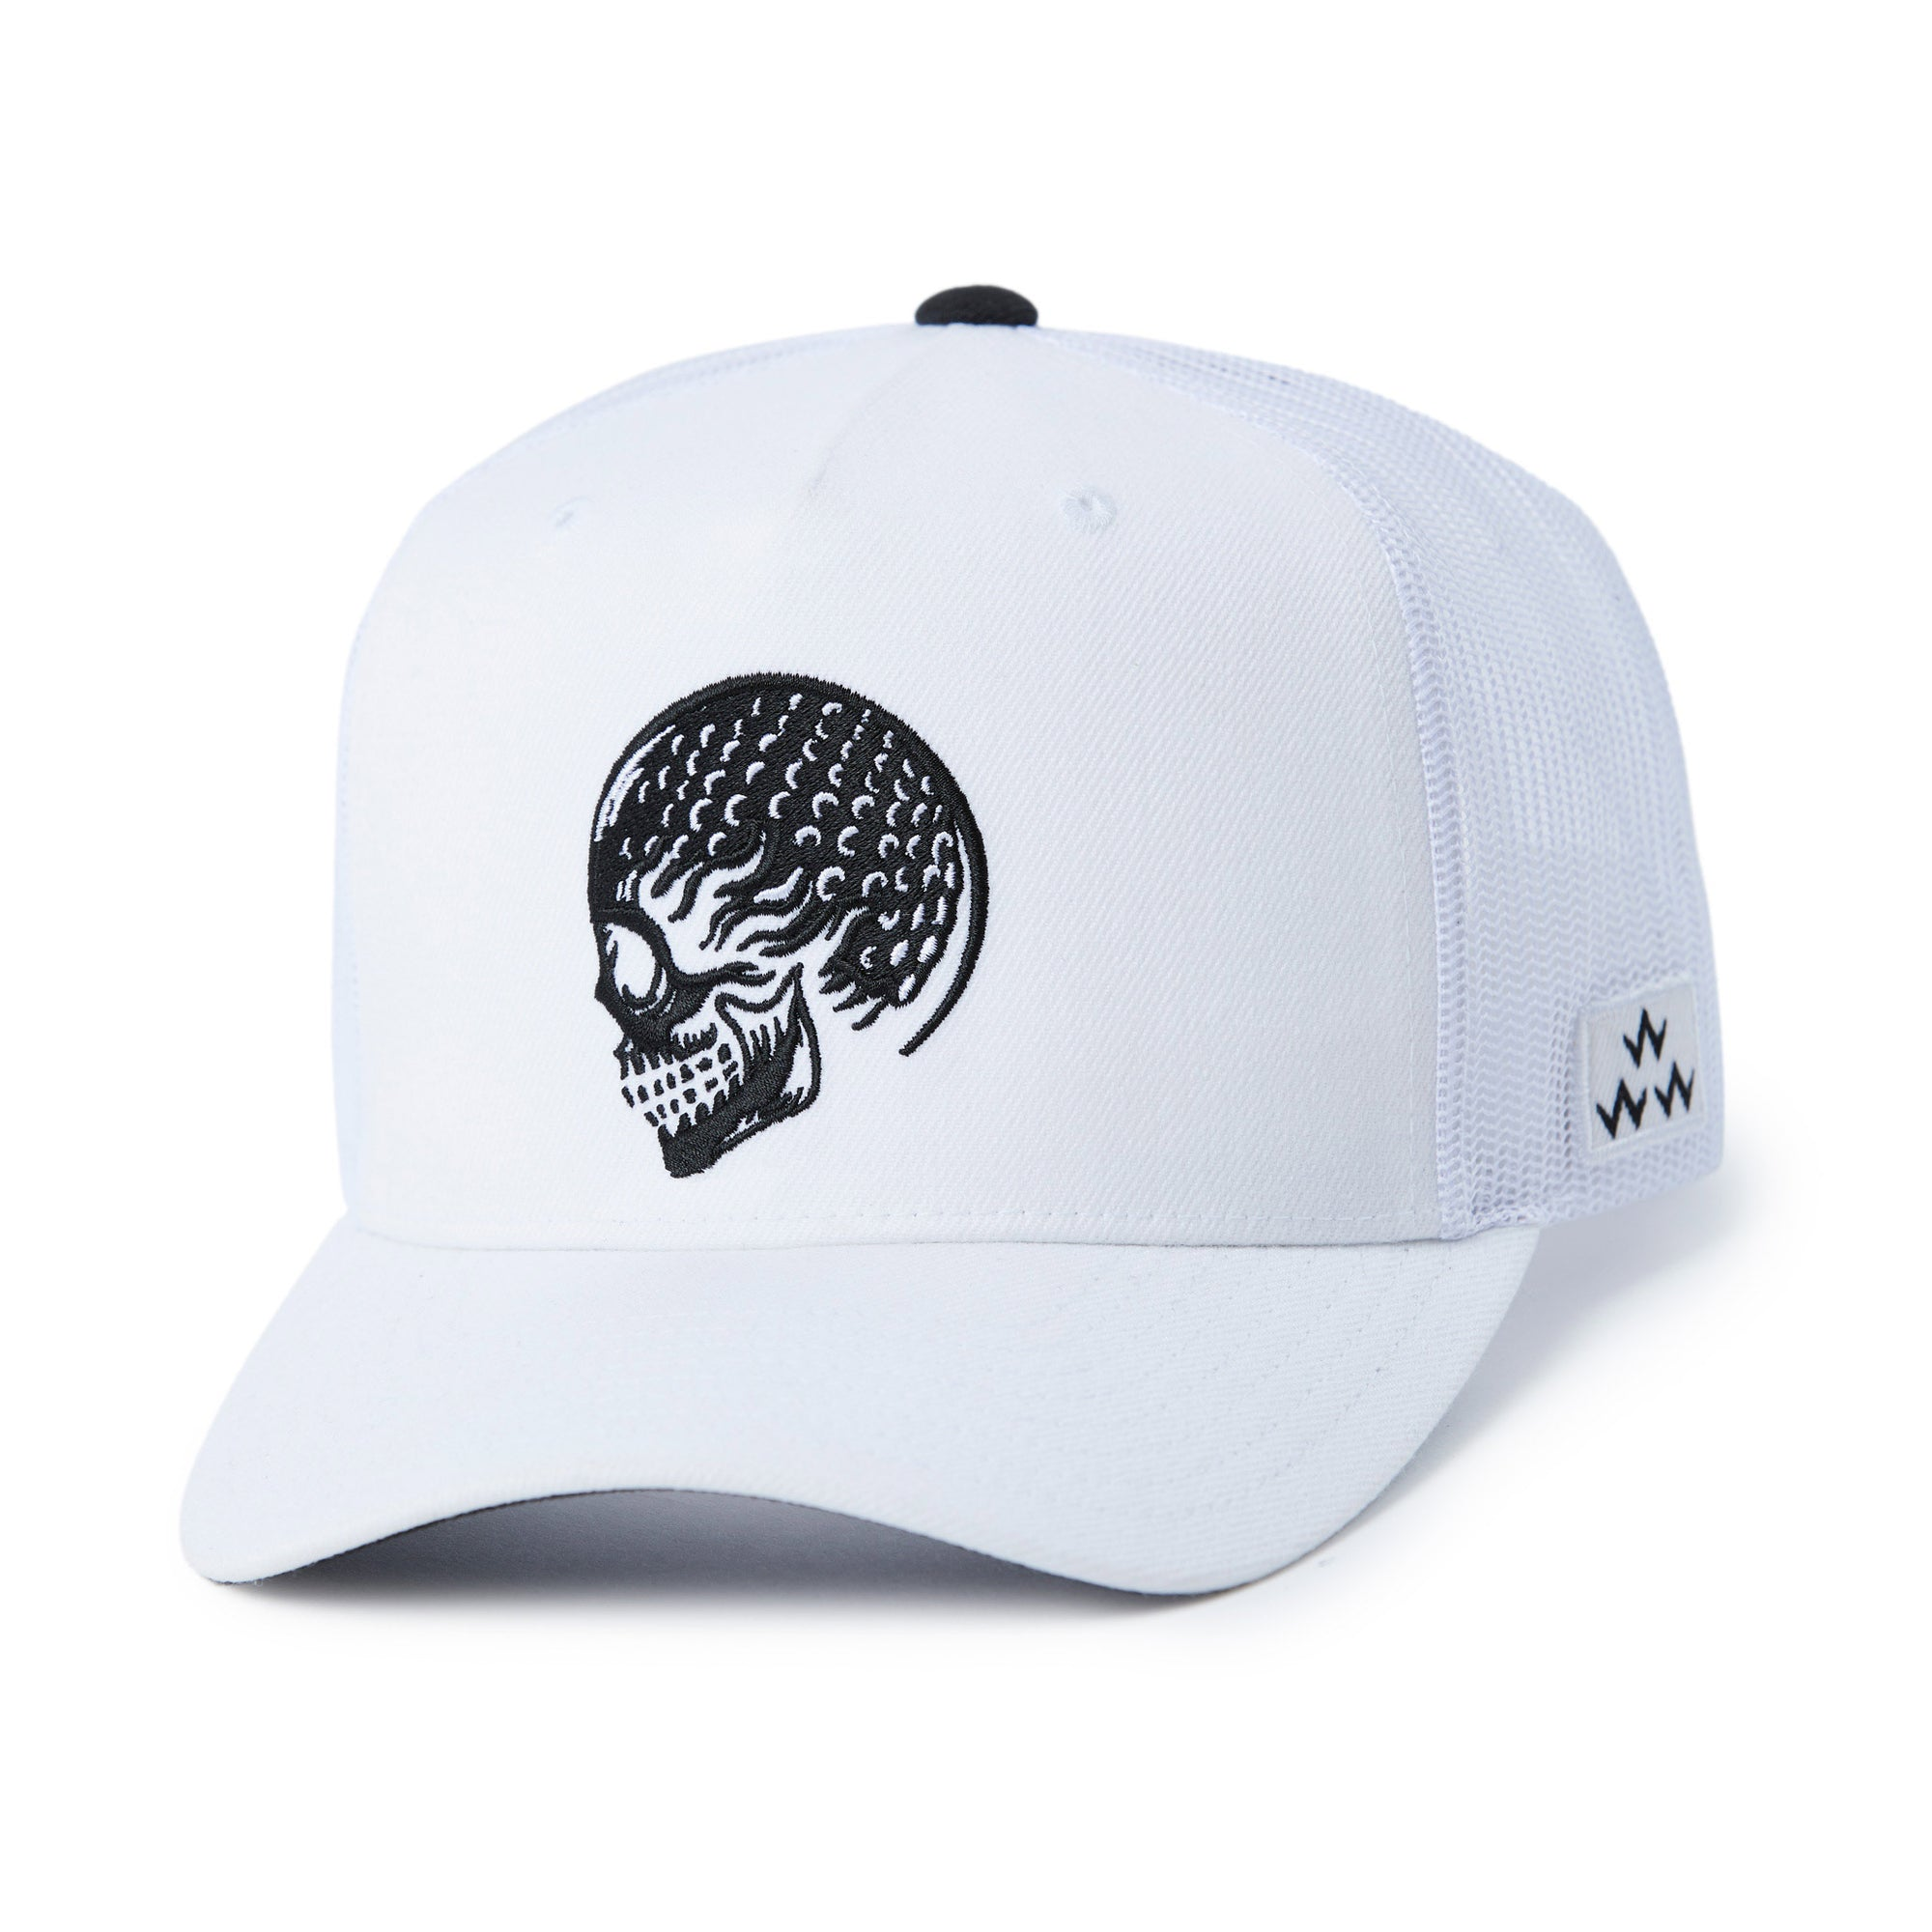 birds-of-condor-white-golf-ball-skulled-trucker-hat-cap-front